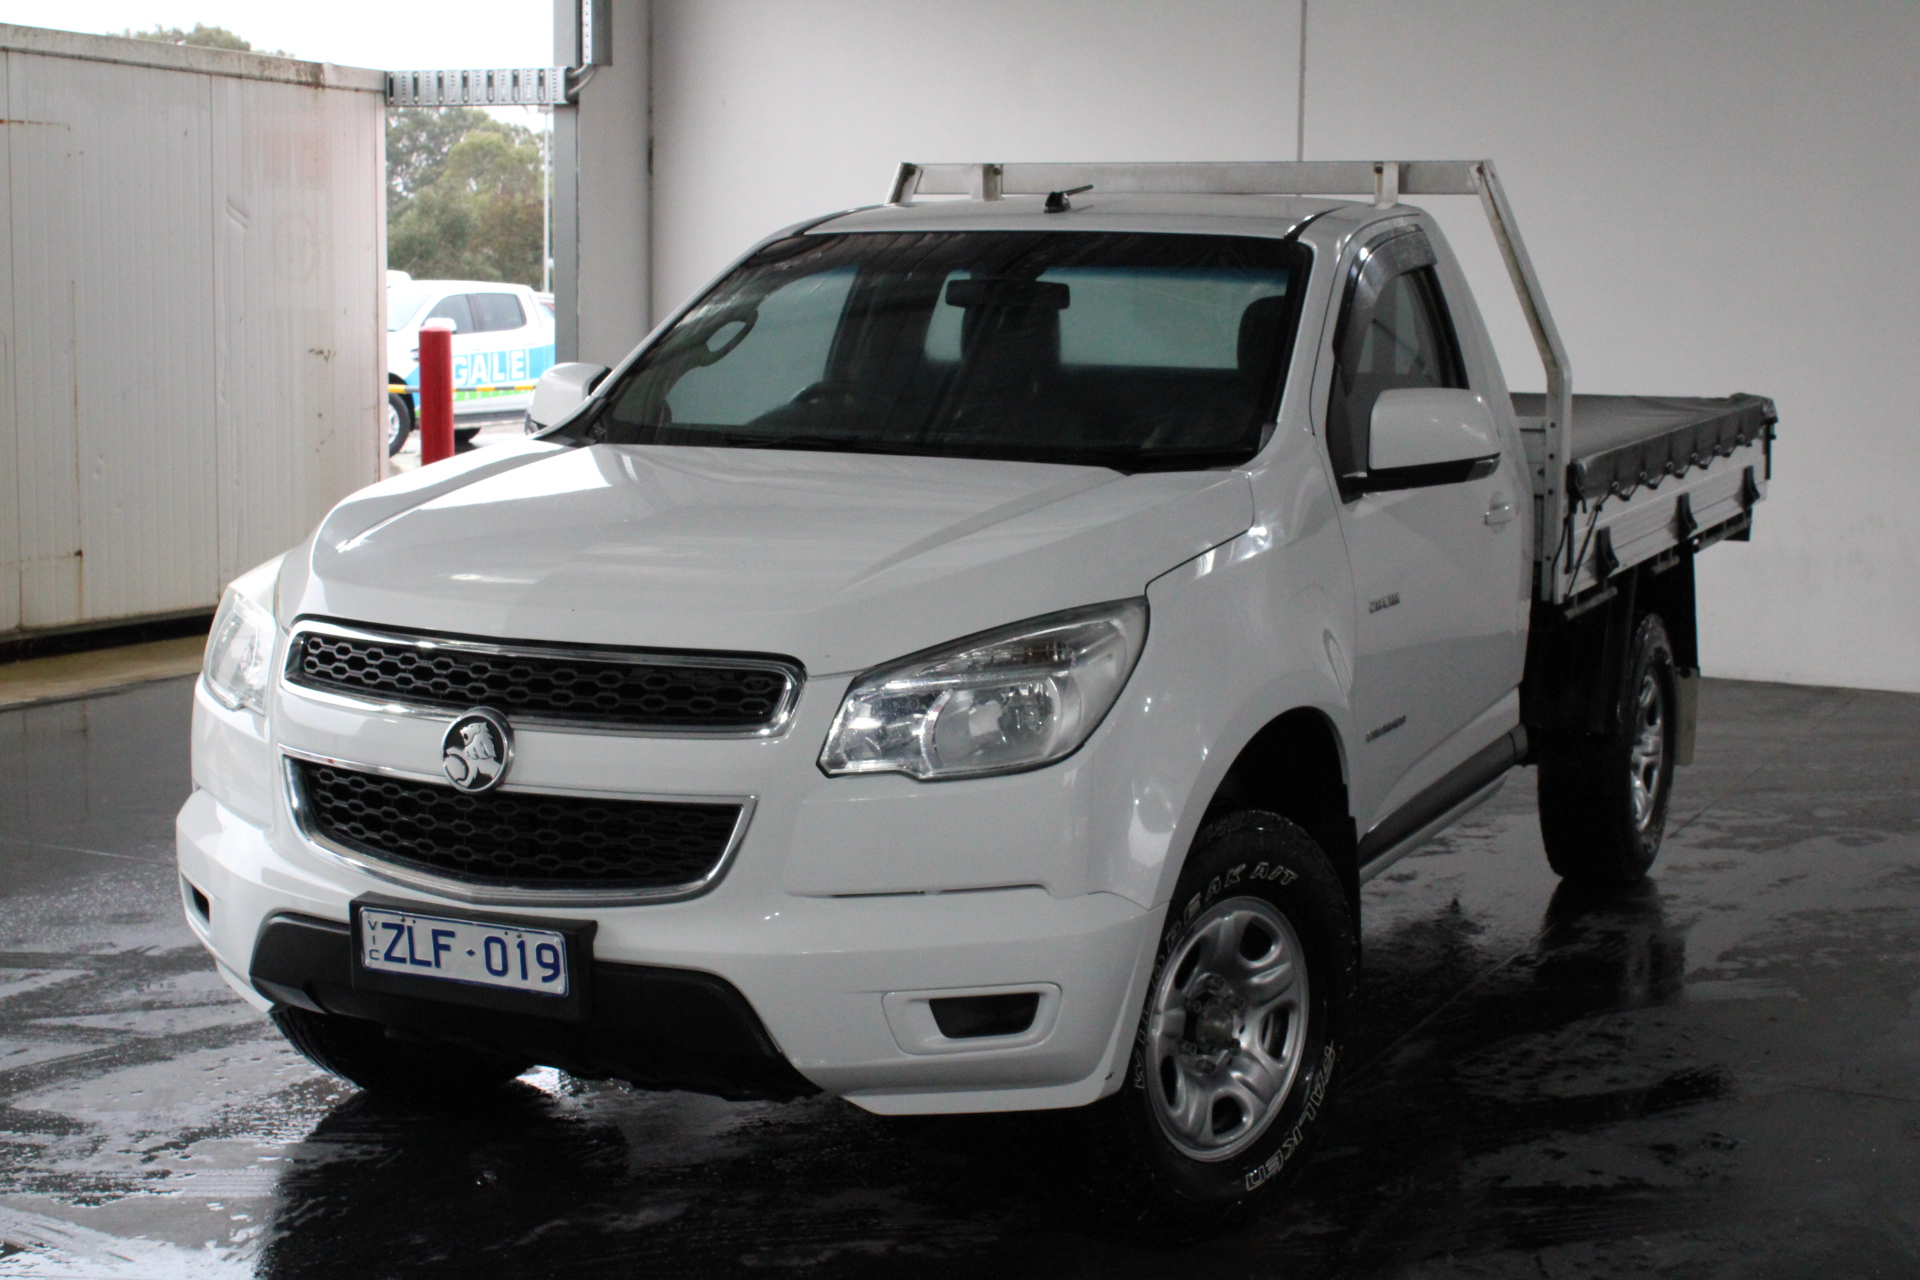 2012 Holden Colorado 4X2 LX RG Turbo Diesel Manual Cab Chassis